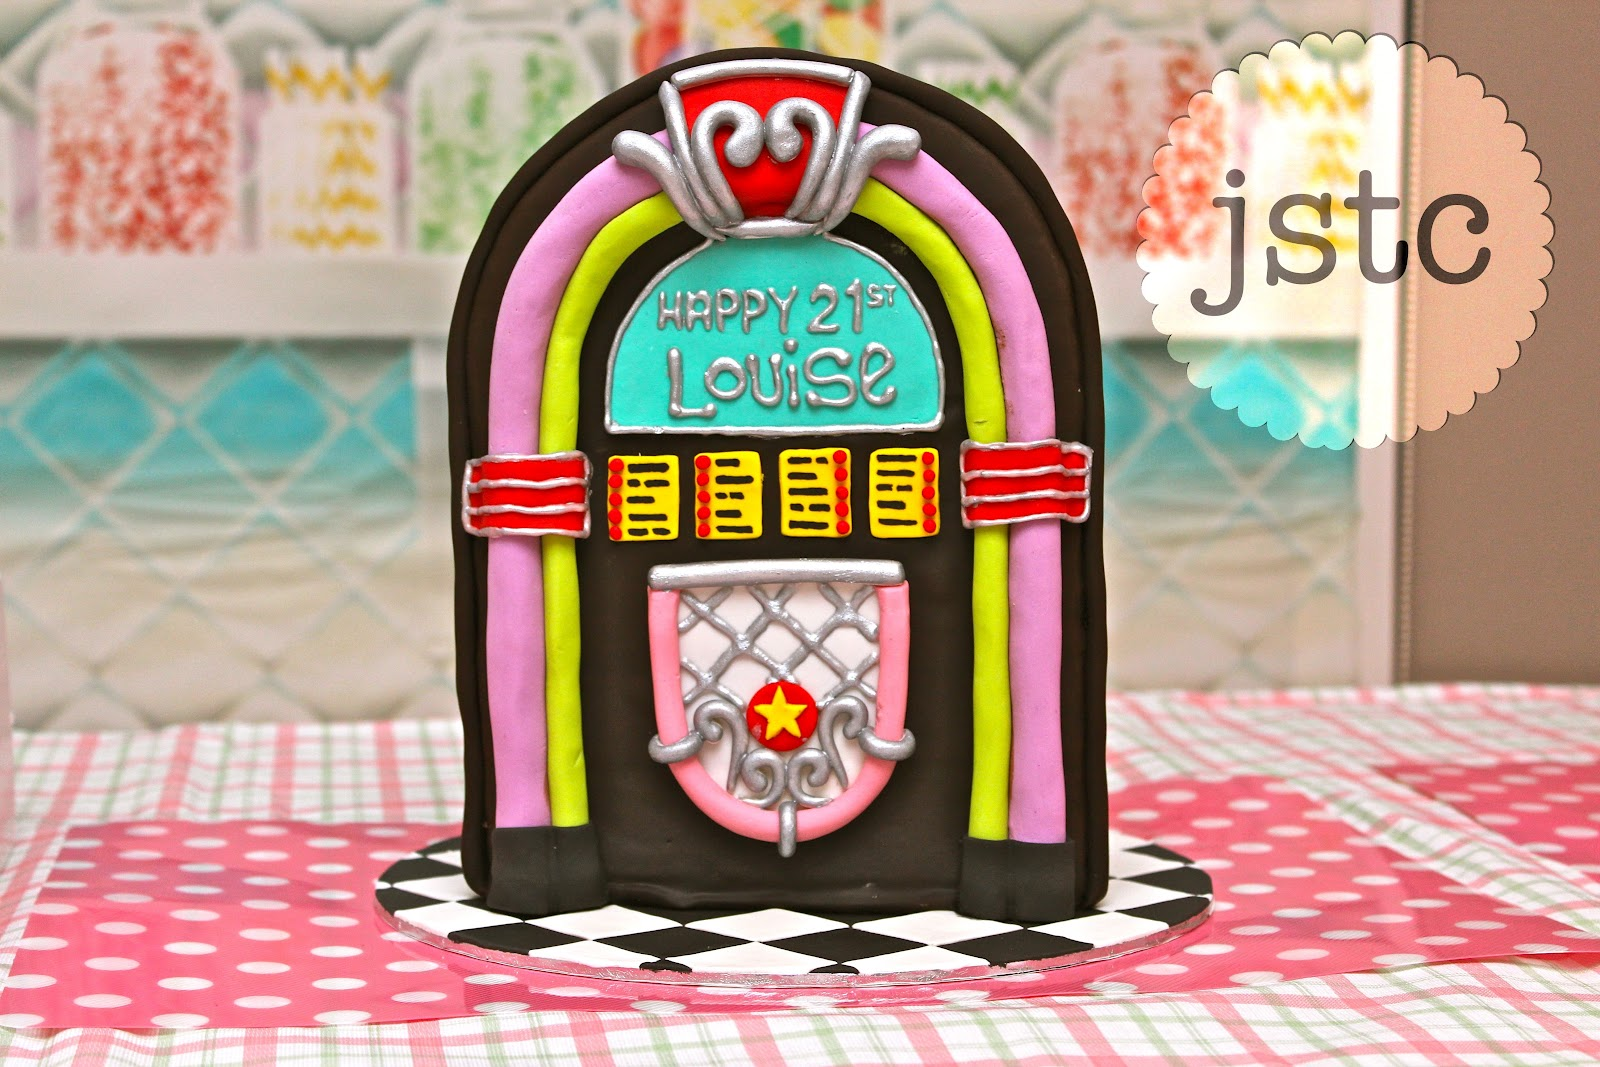 1950 Theme Cake http://jemmassweettreatcatering.blogspot.com/2012/05/jukebox-cake-1950s-themed-treats.html